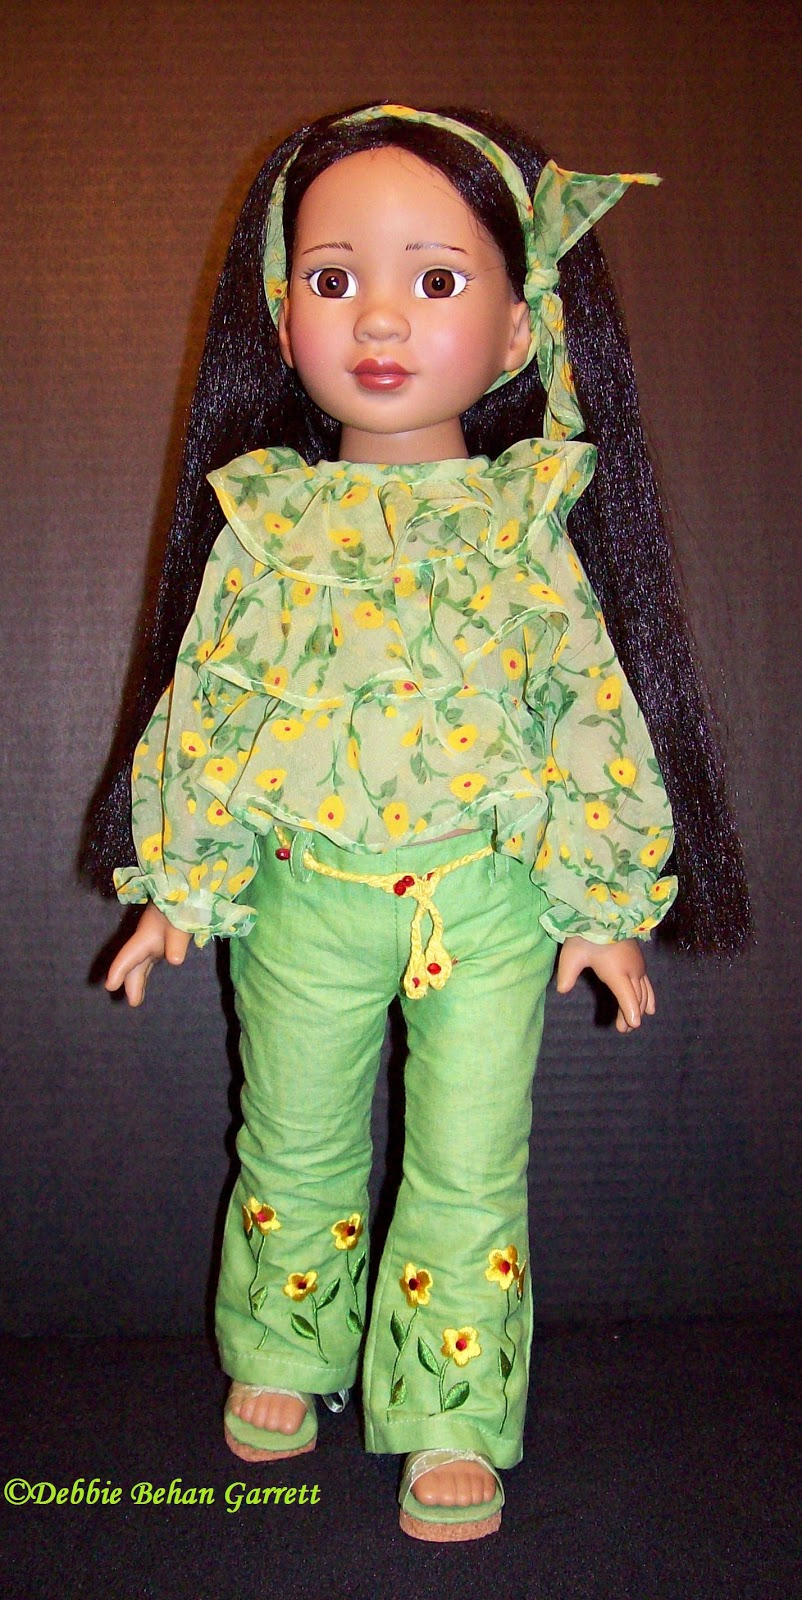 Black Doll Collecting: Do You Remember Keisha